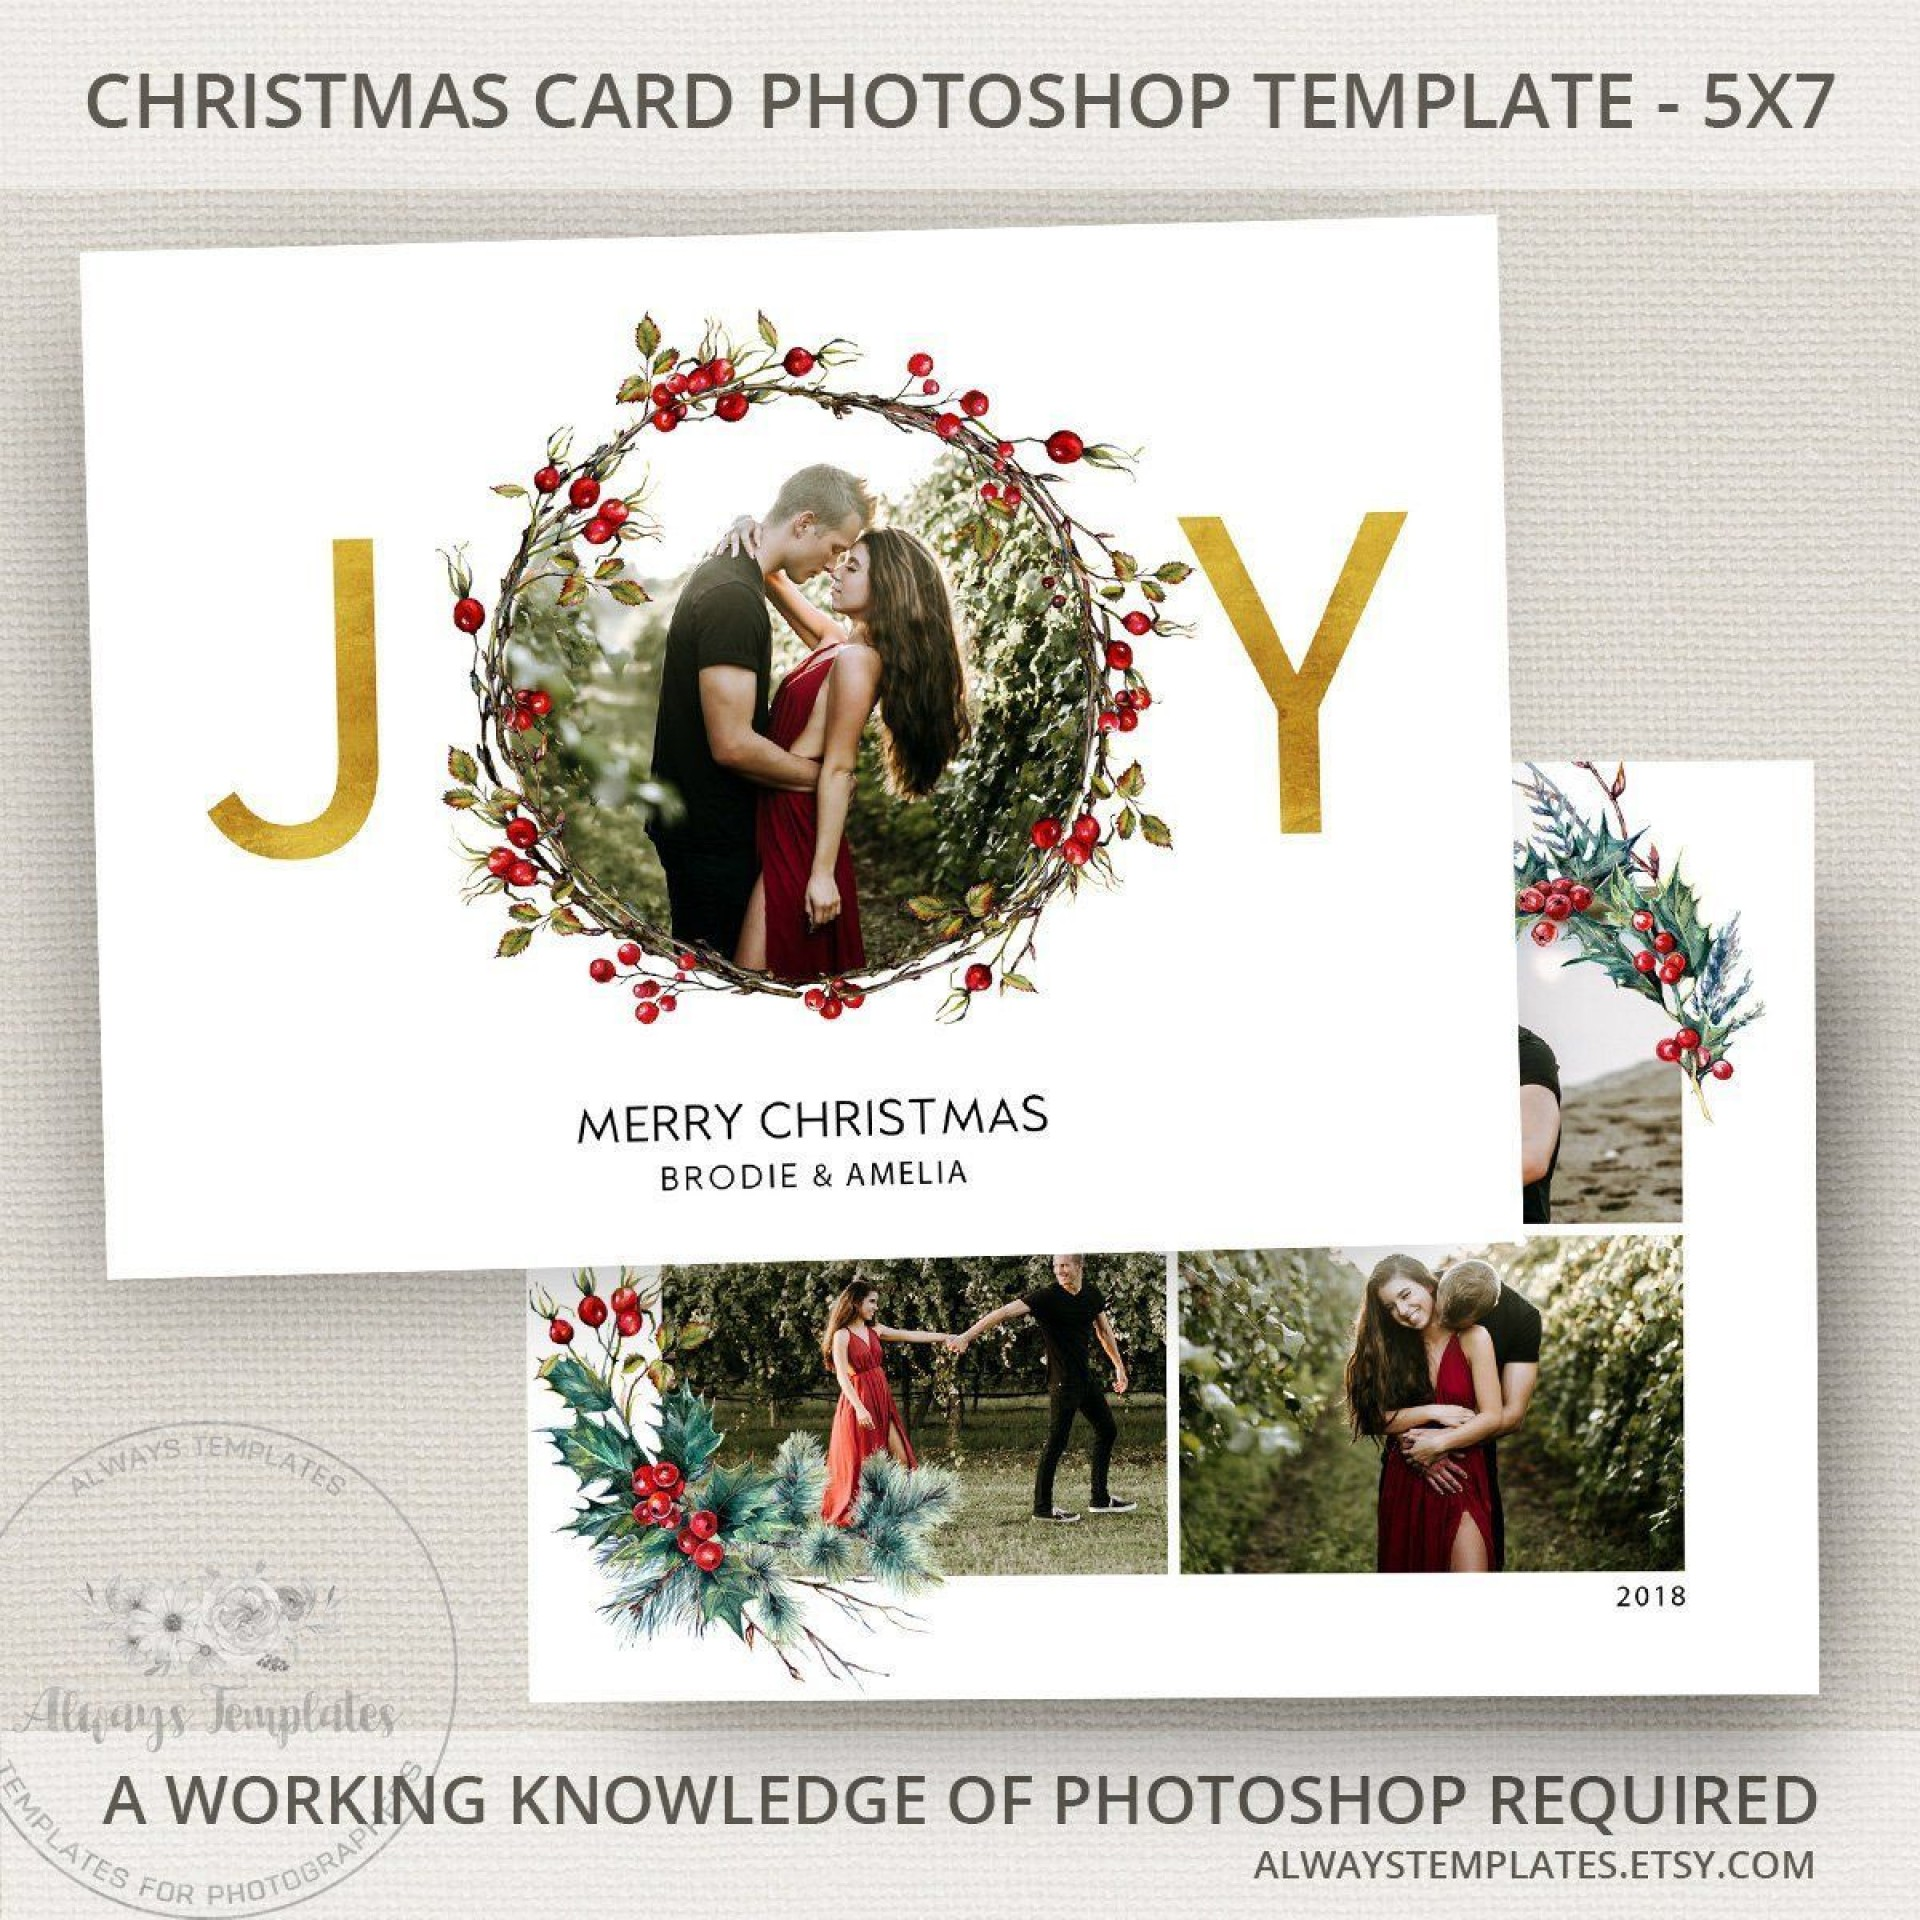 000 Beautiful Photoshop Christma Card Template Idea  Templates Xma Funny1920